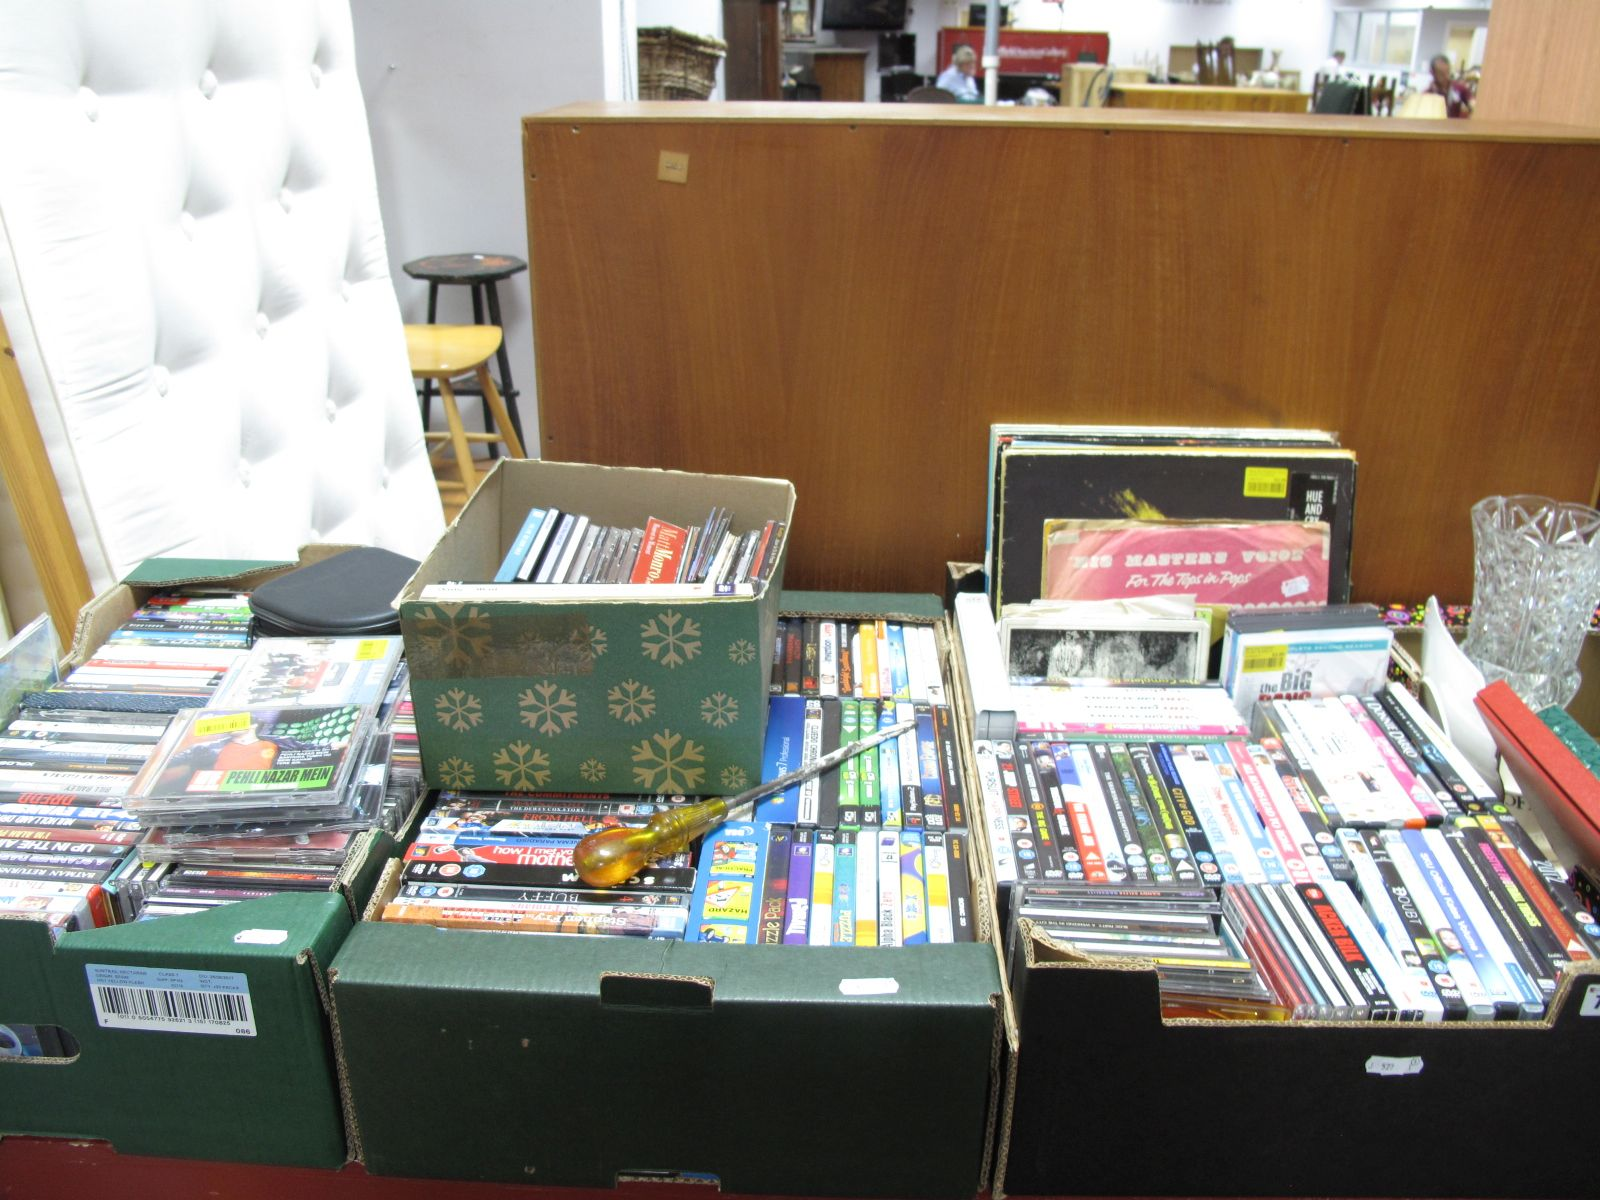 Lot 756 - A Quantity of DVD's, CD's (many modern titles noted) LP's, 45RPM's, etc:- Three Boxes